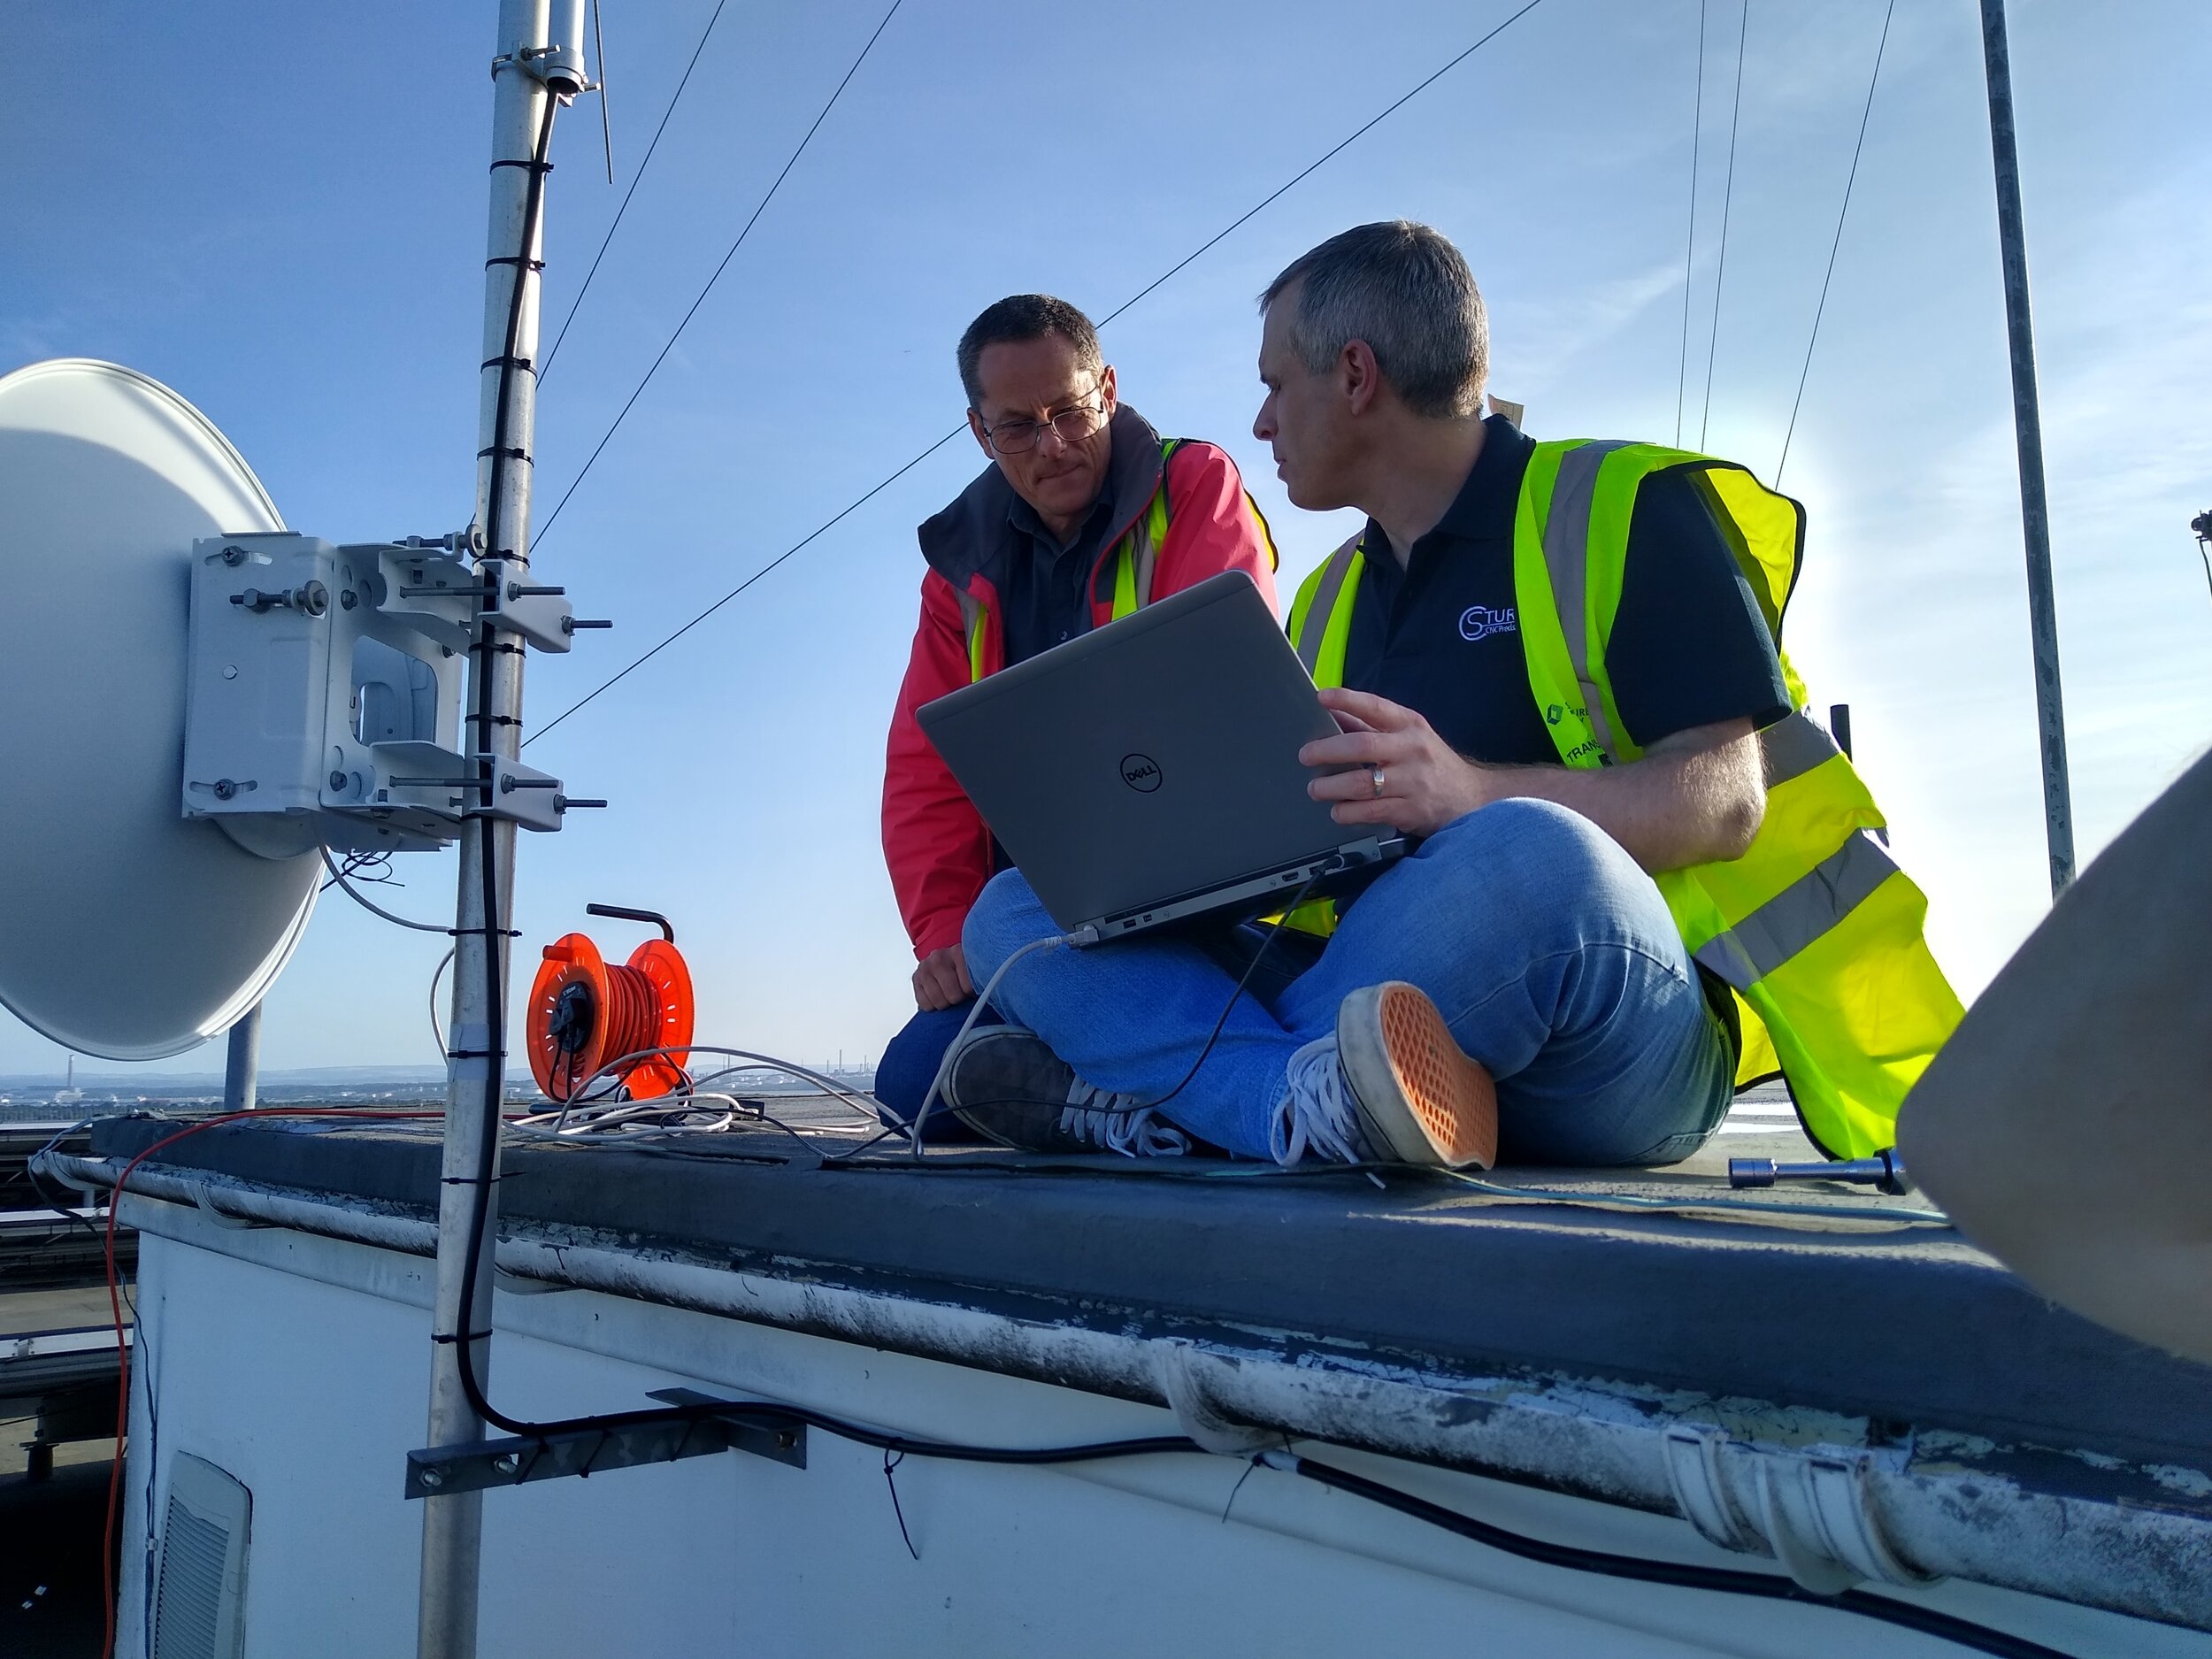 South Hampshire Repeater Group Launches 70cm 'Internet Free' Linking